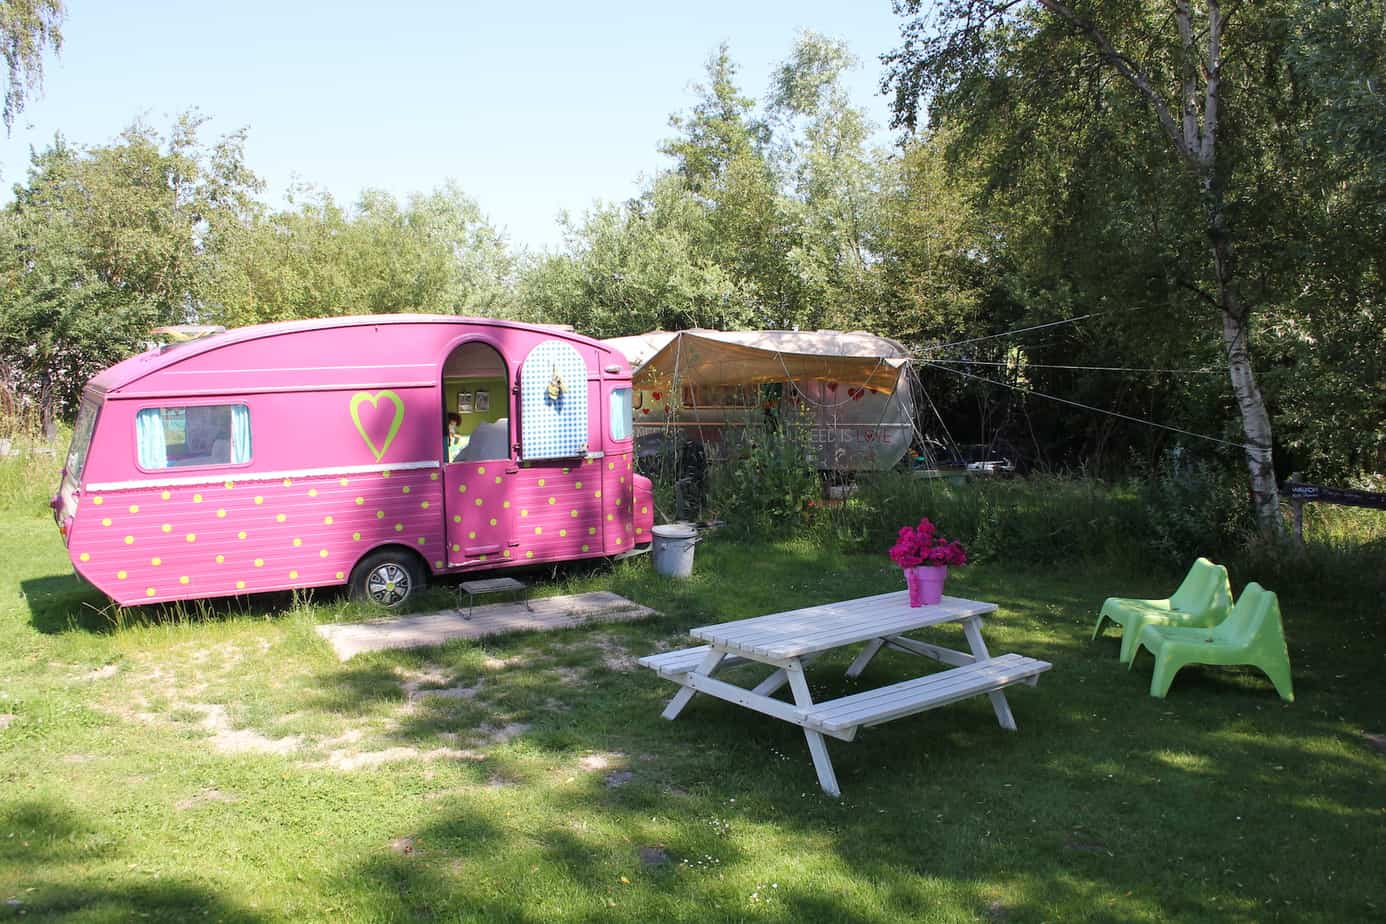 Eiland de woude camping 3 akers enjoy the good life - Caravan ingericht ...